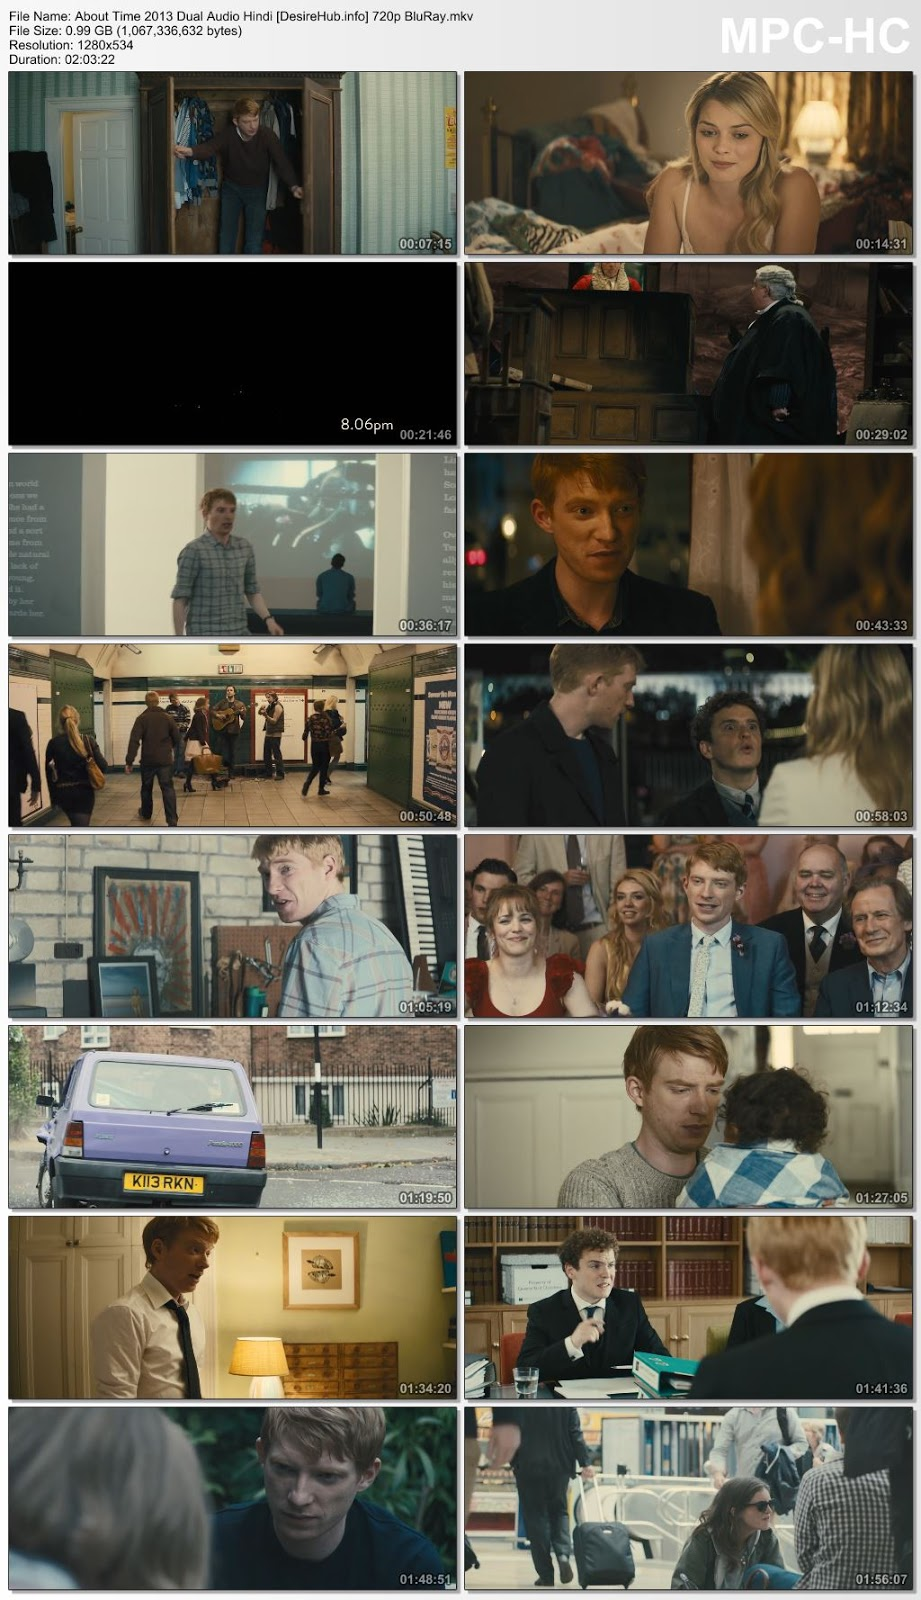 About Time 2013 Dual Audio Hindi 480p BluRay 350MB Desirehub